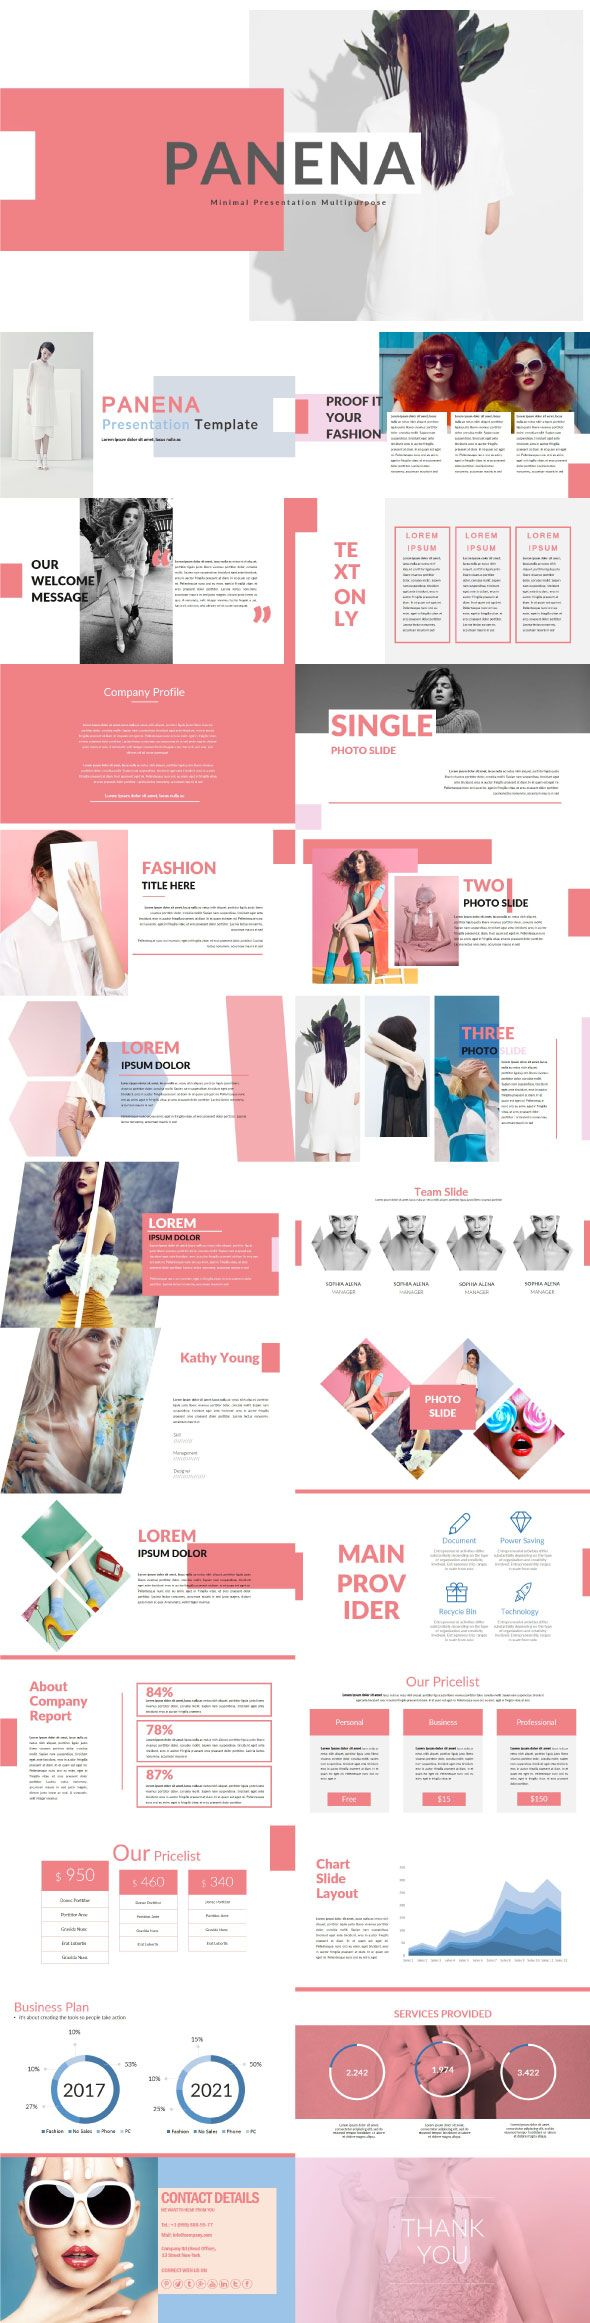 Panena - Multipurpose PowerPoint Template